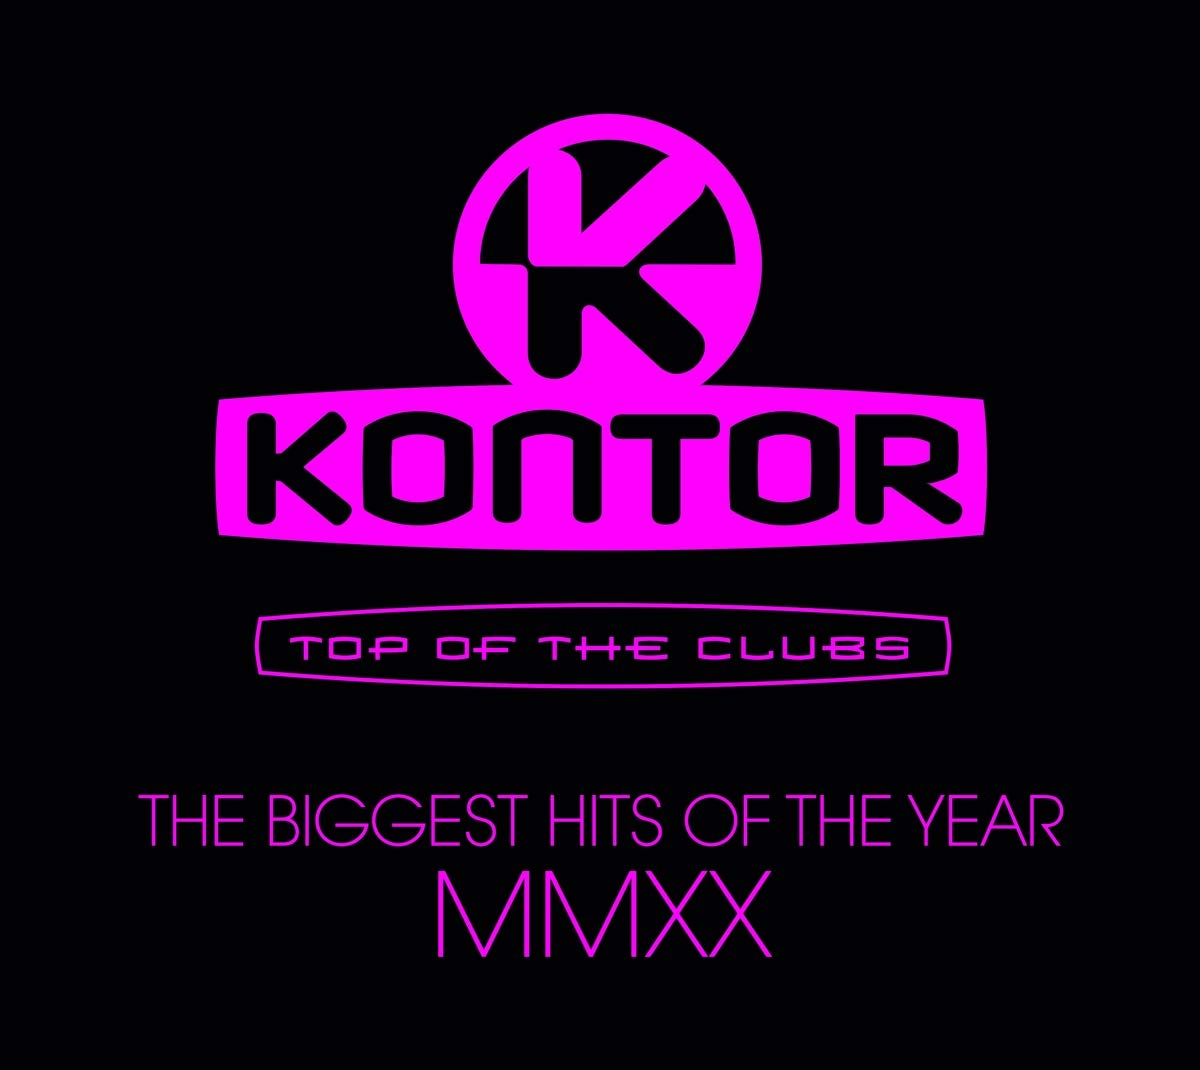 Top Of The Clubs MMXX